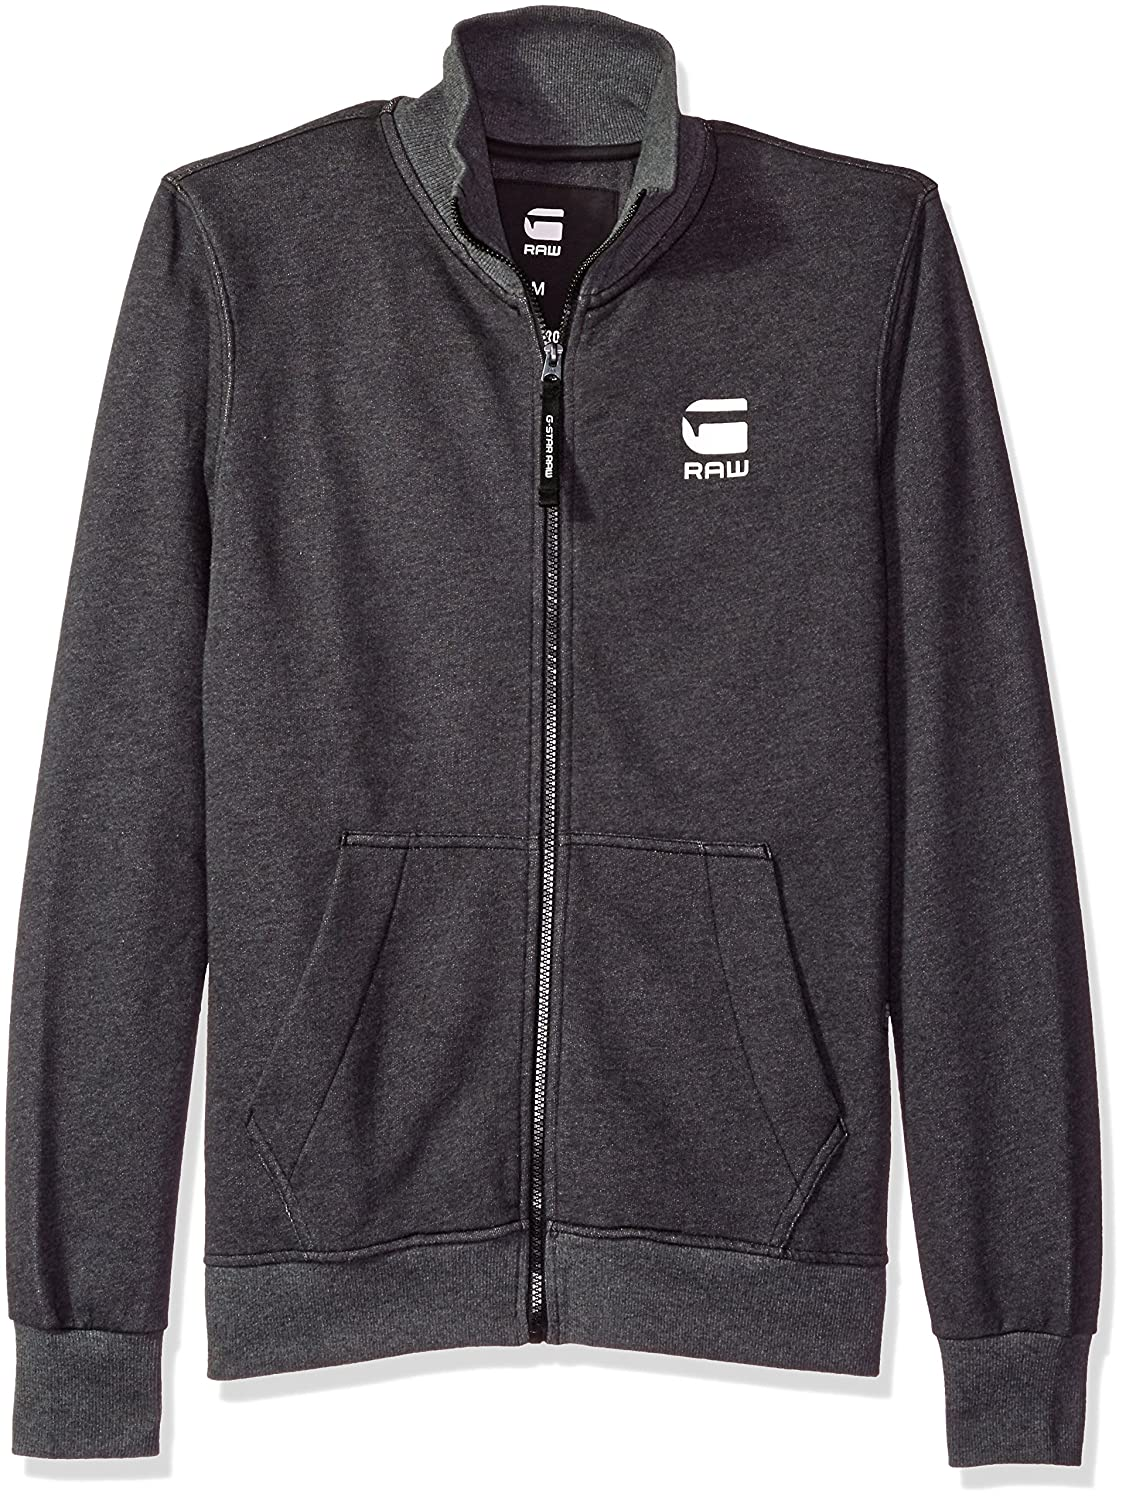 G-Star Raw Men's Strijsk Stand Collar Full Zip Sweatshirt Black G-Star Raw Men' s Collection D03133-8165